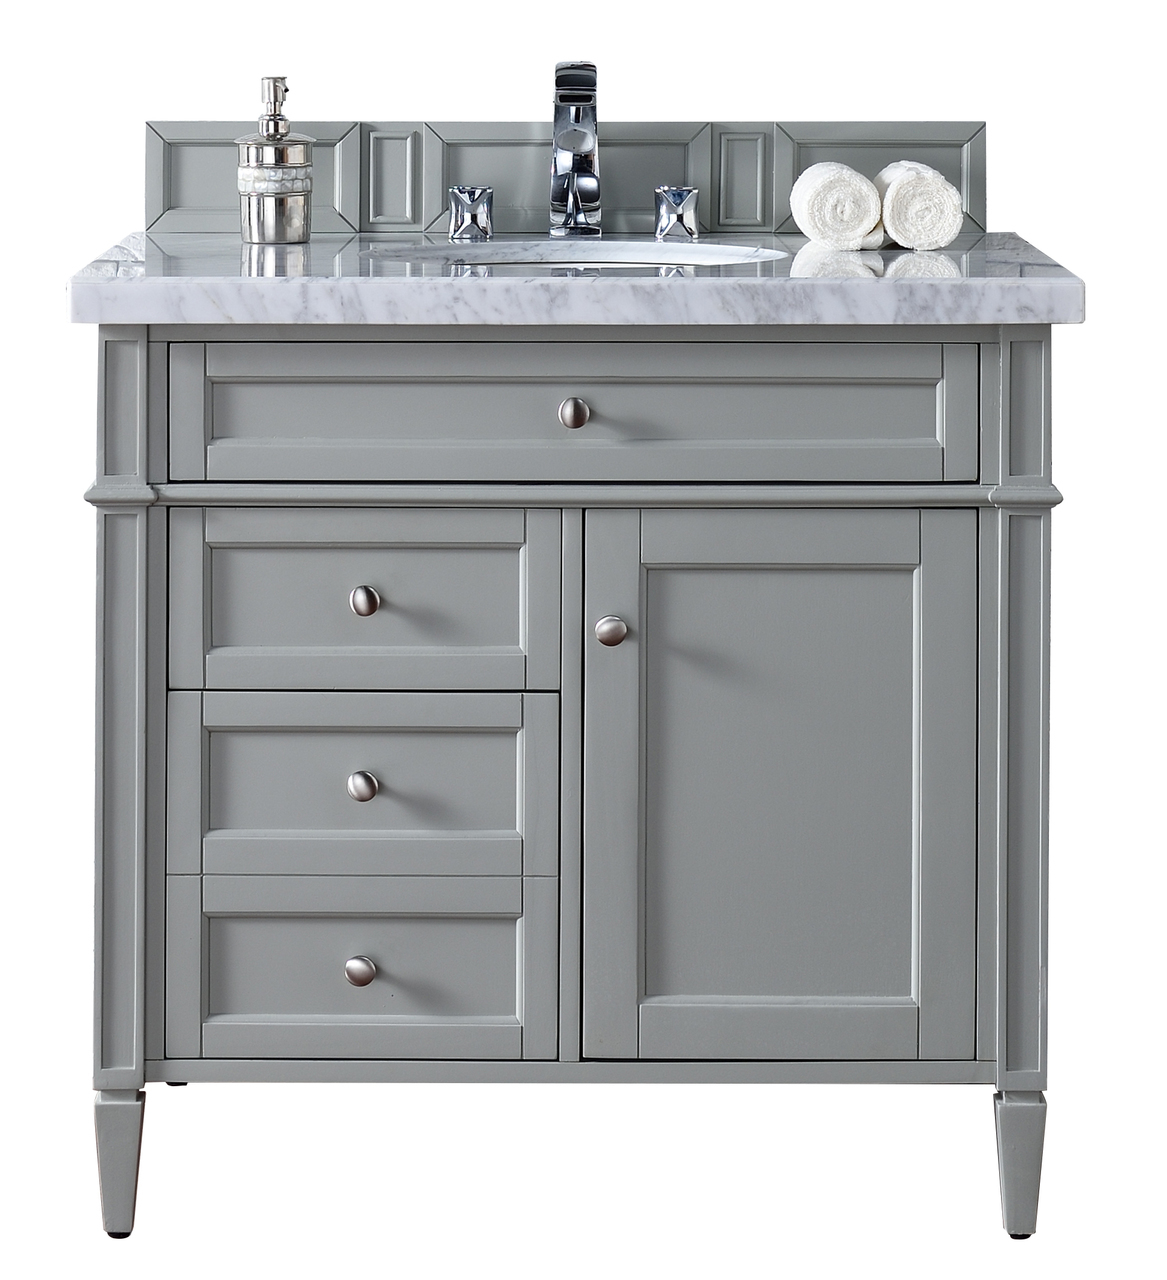 James martin brittany collection 36 single vanity urban gray for Vanities for the bathroom